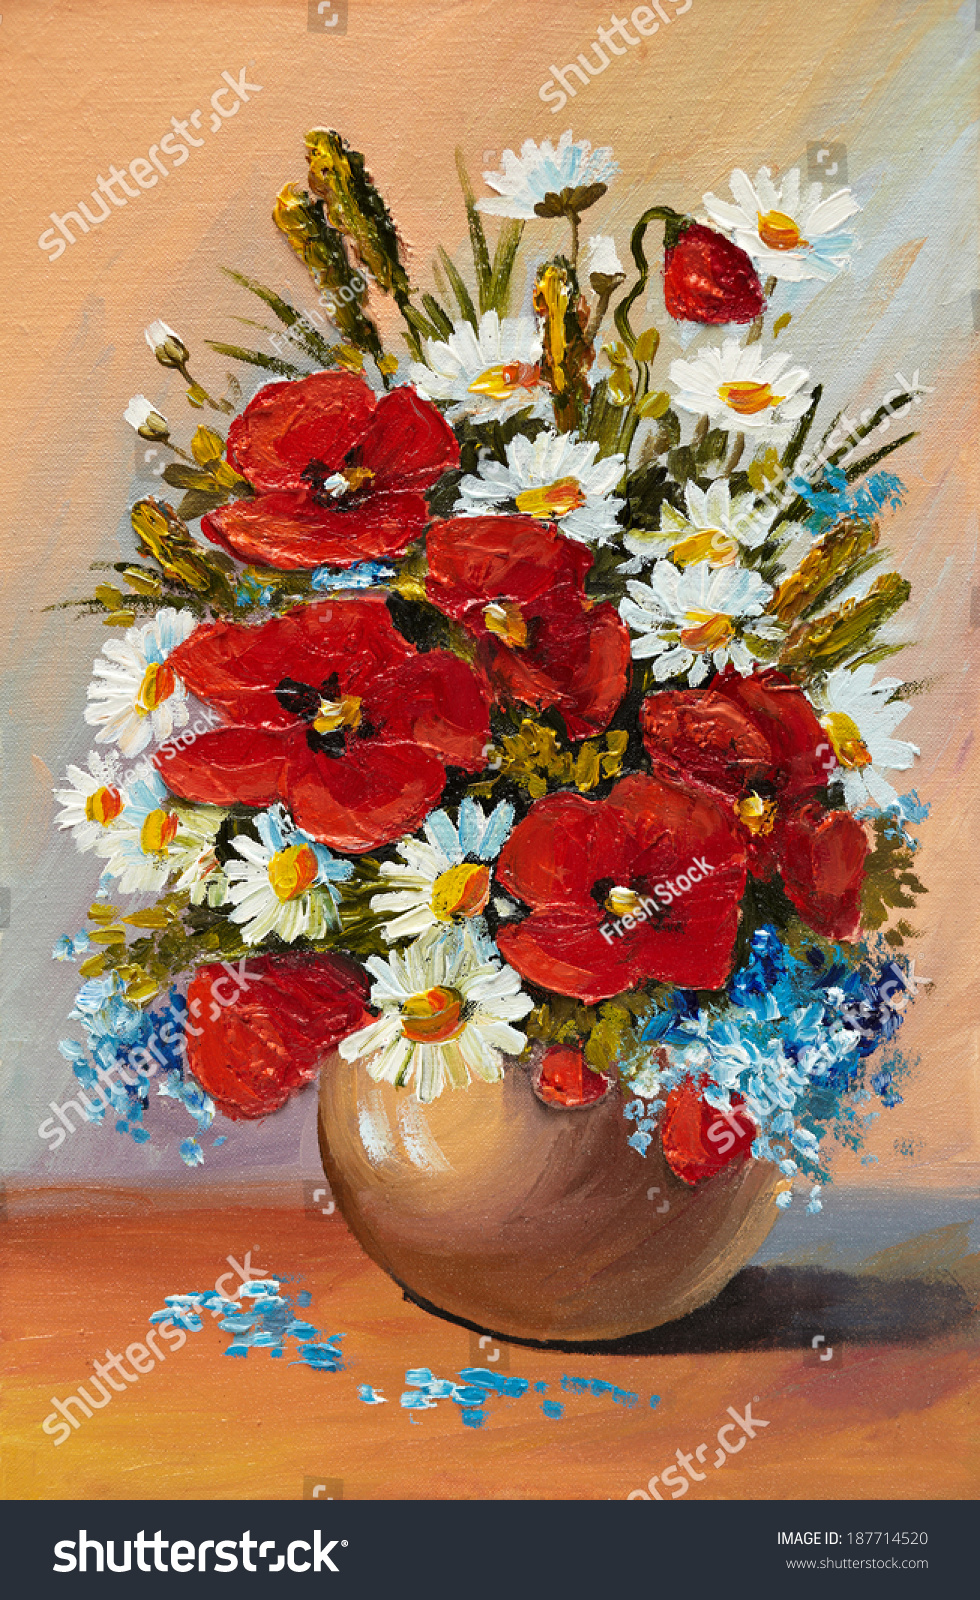 Oil painting spring flowers vase on stock illustration 187714520 oil painting of spring flowers in a vase on canvas abstract drawing floridaeventfo Images